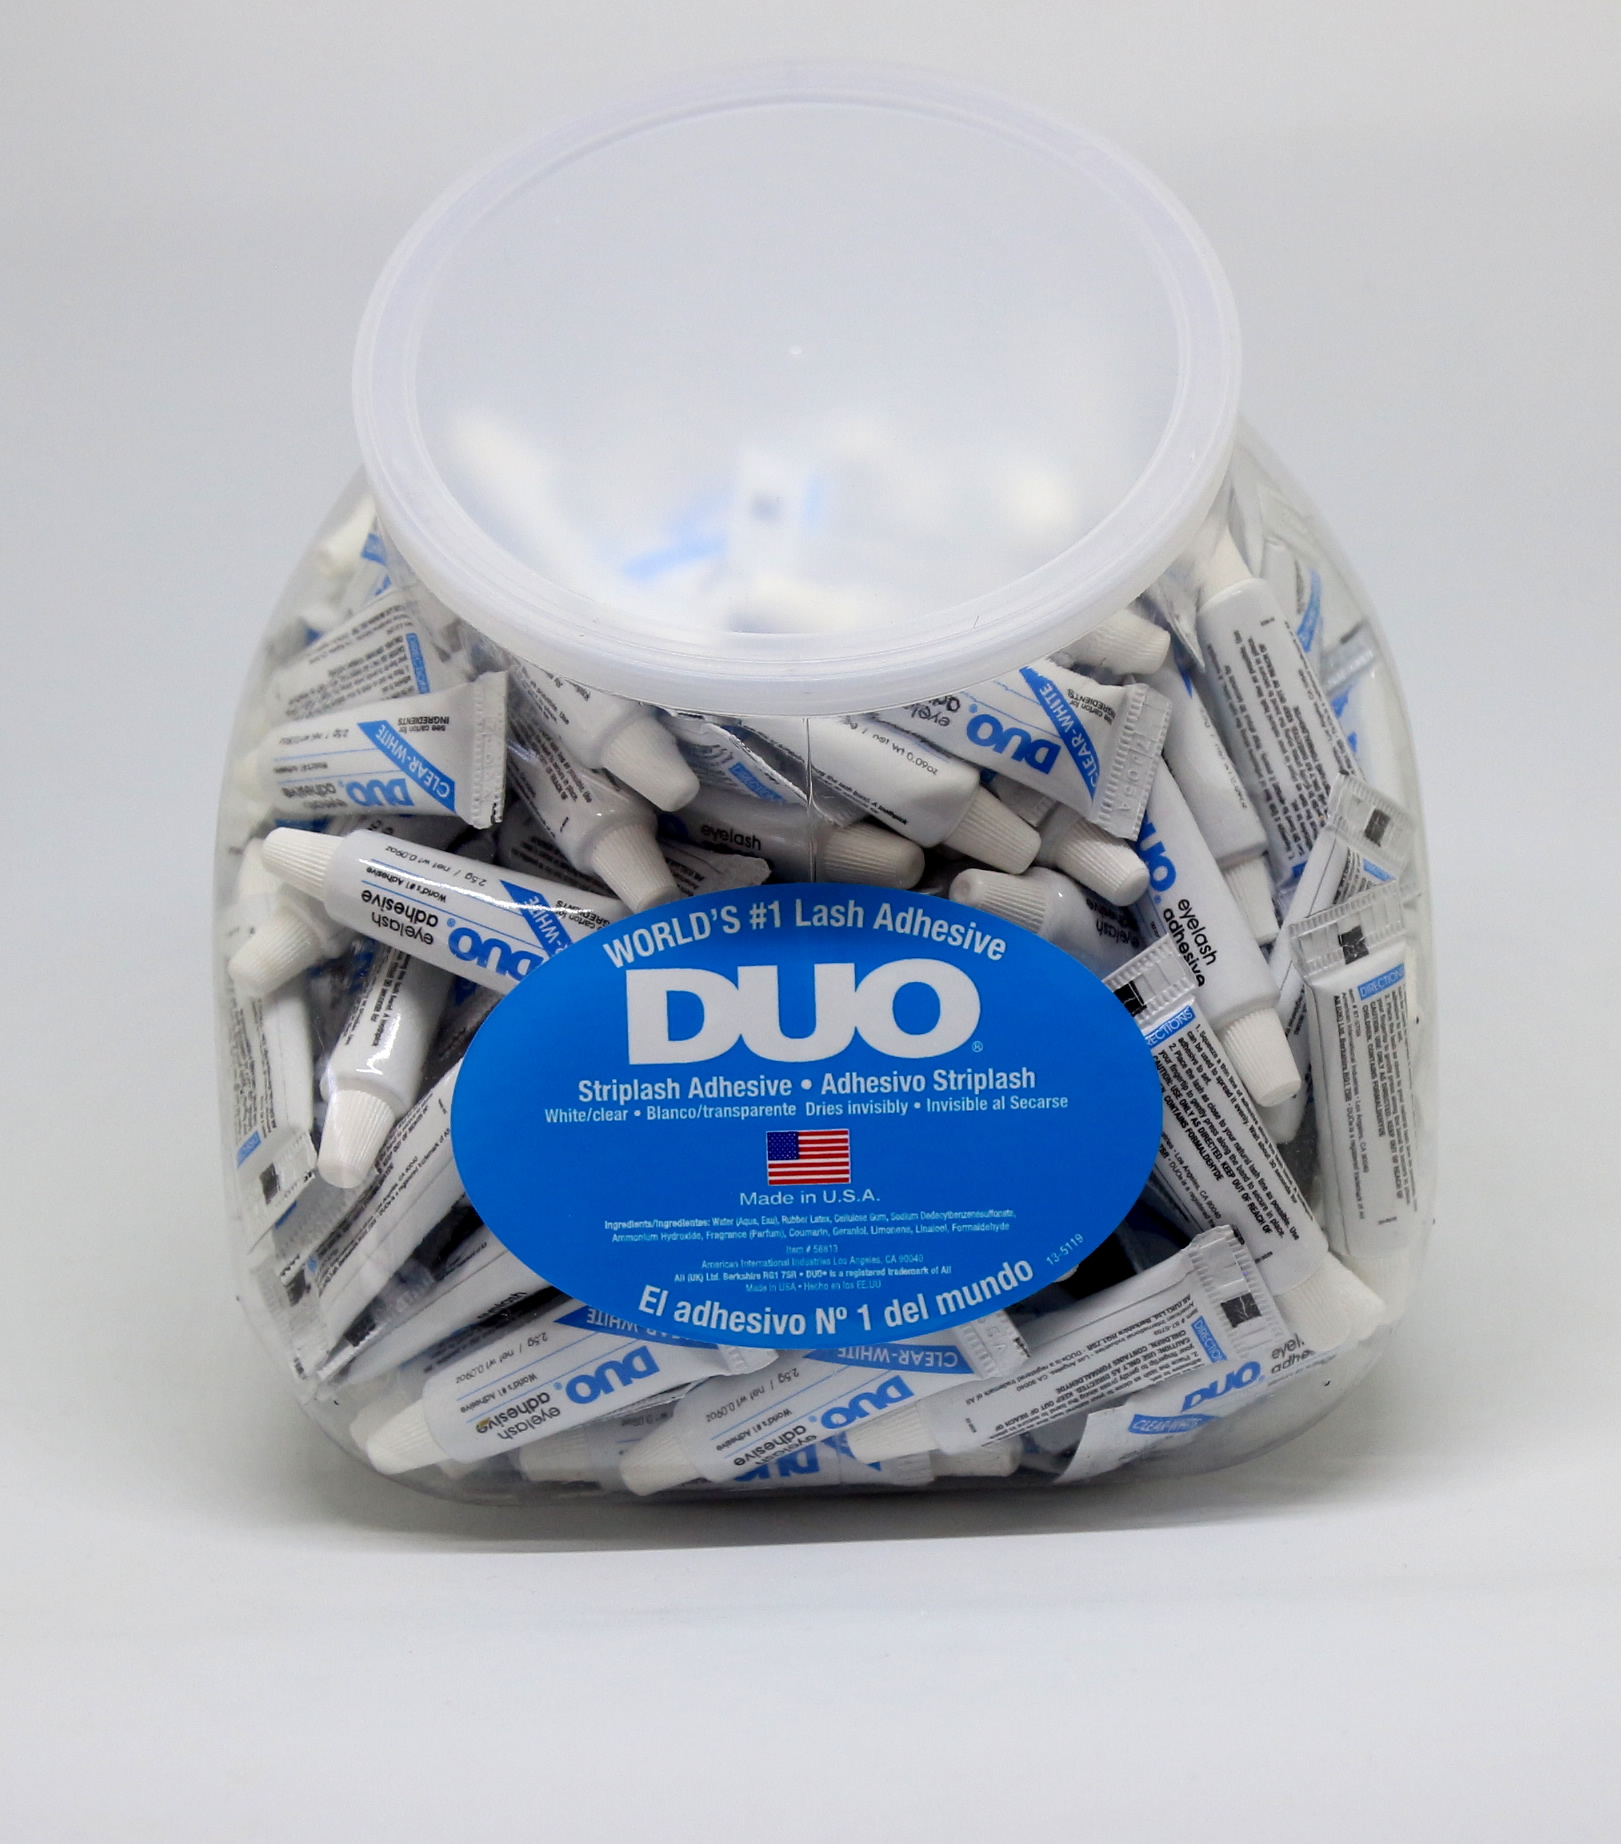 DUO Eyelash Adhesive 0.9oz Clear Fish Bowl